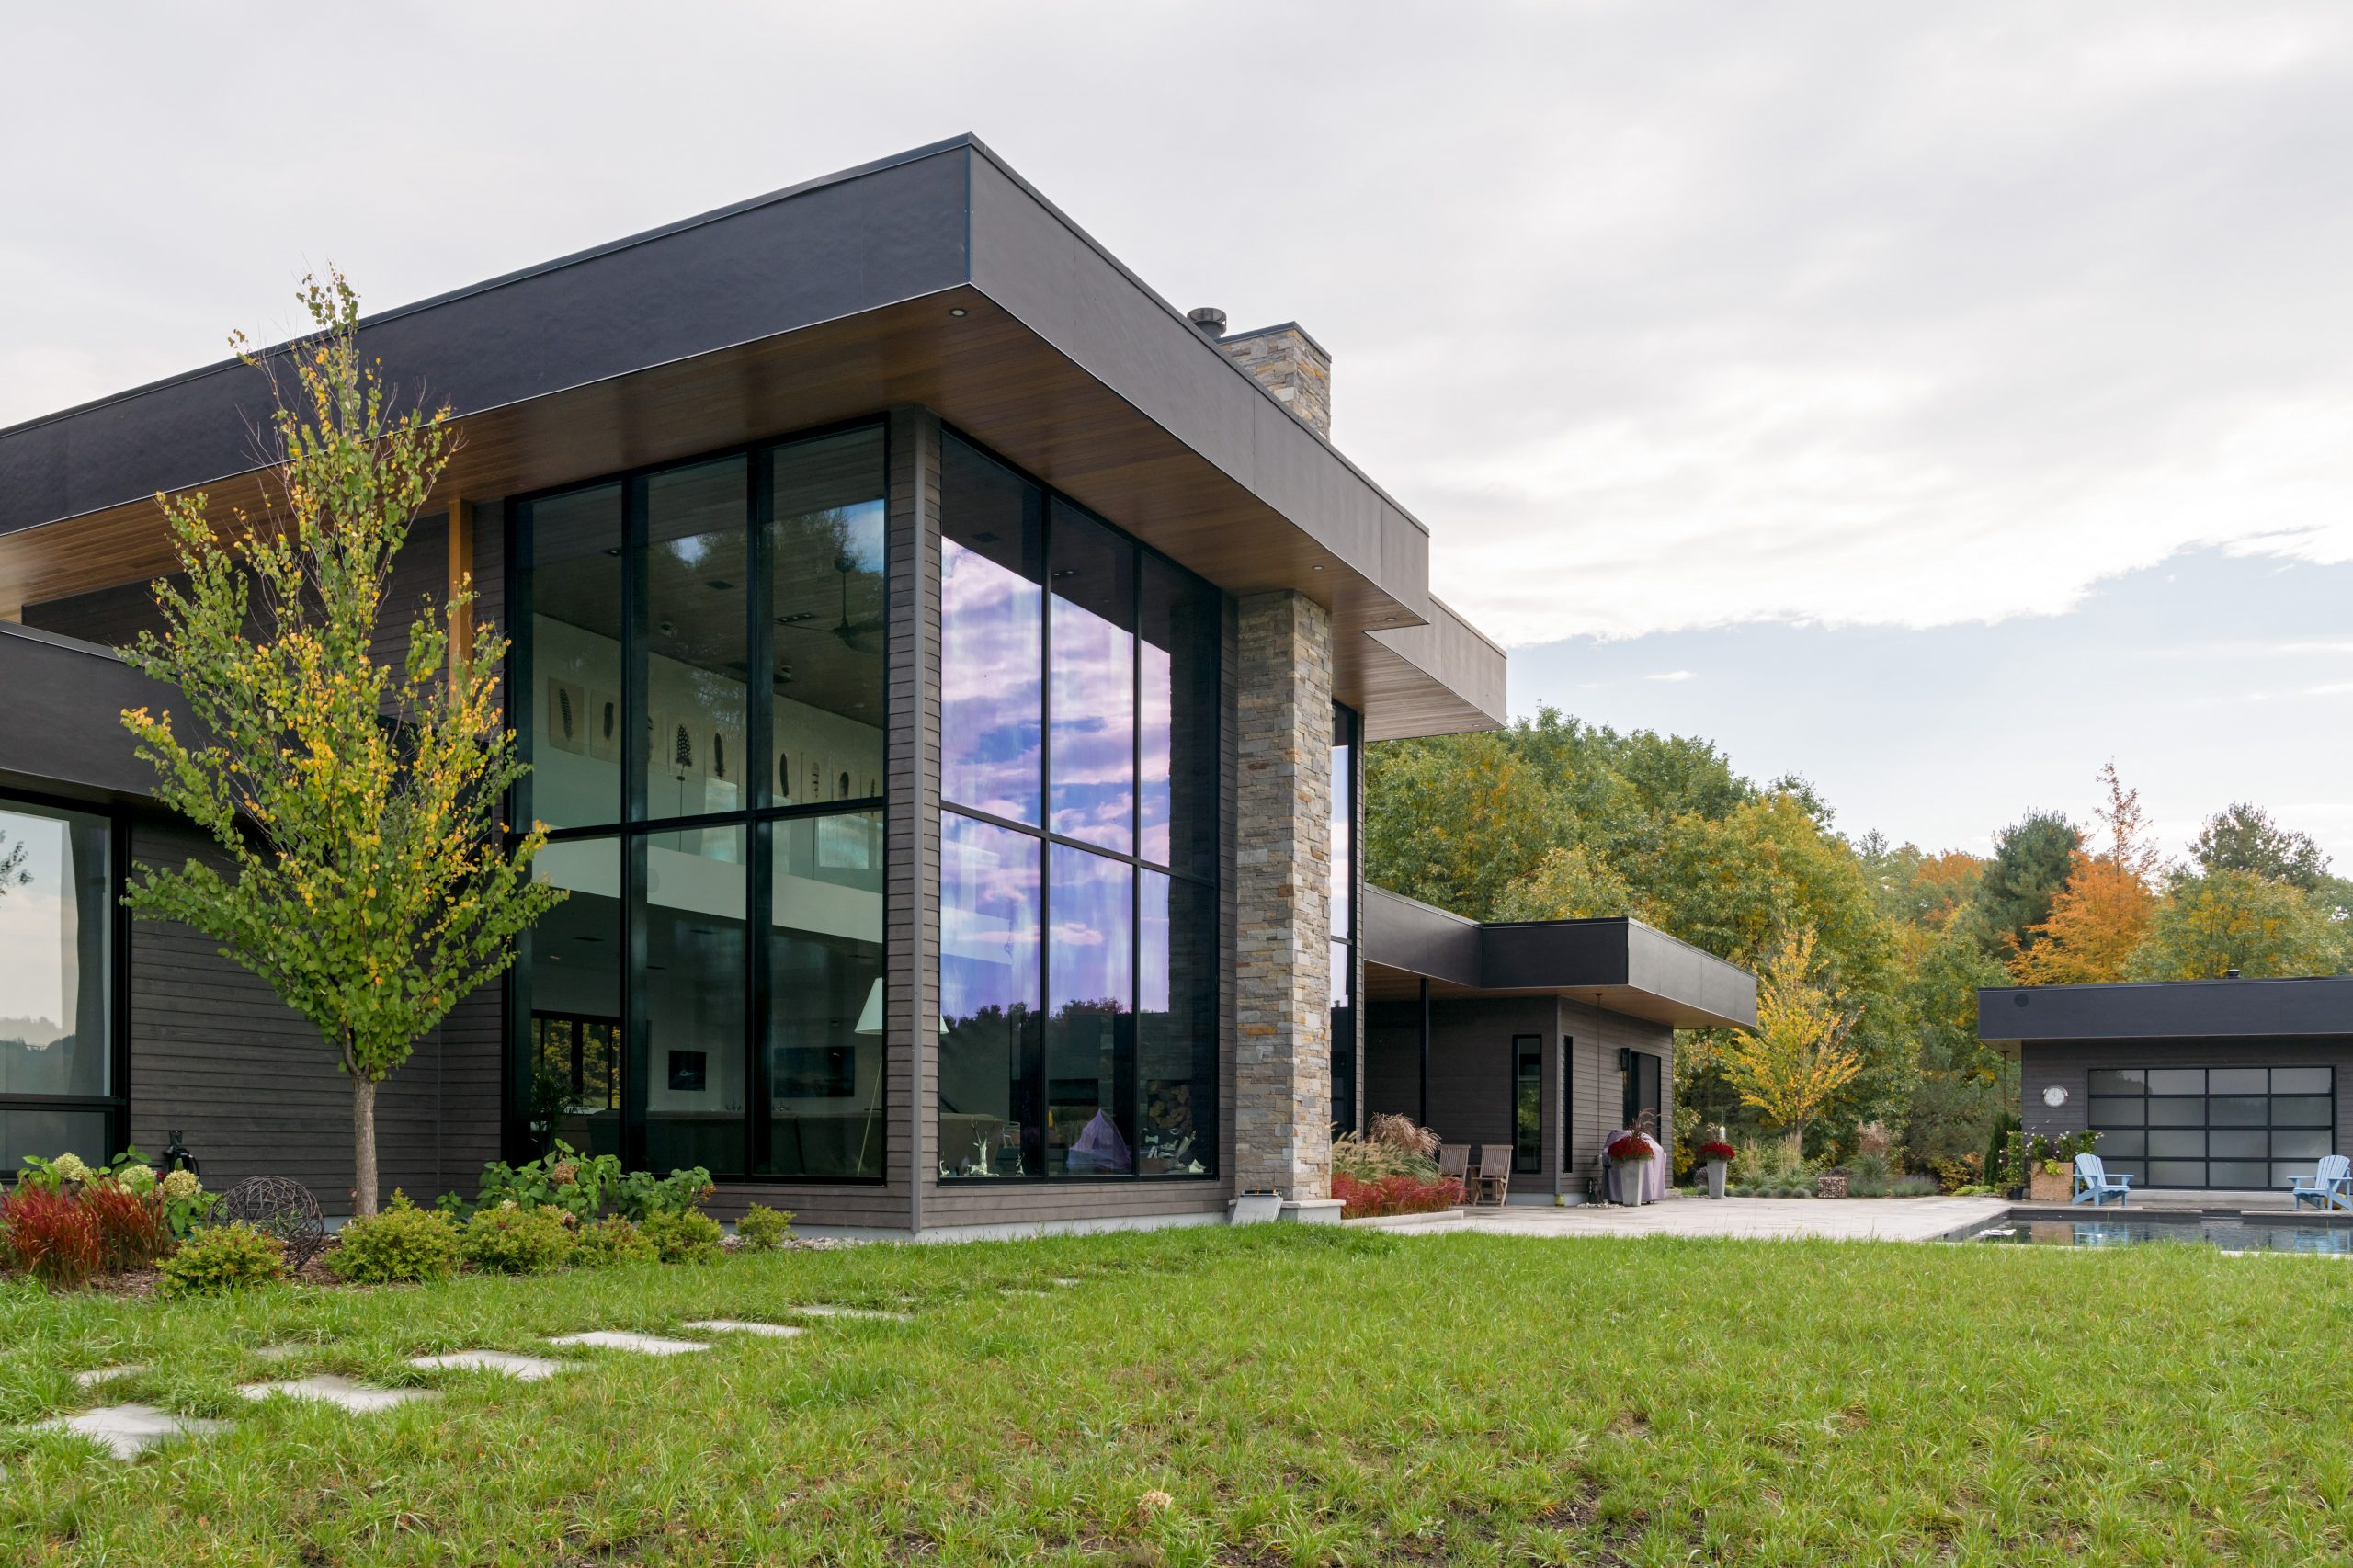 Home Garrison Creek Homes: A sustainable home